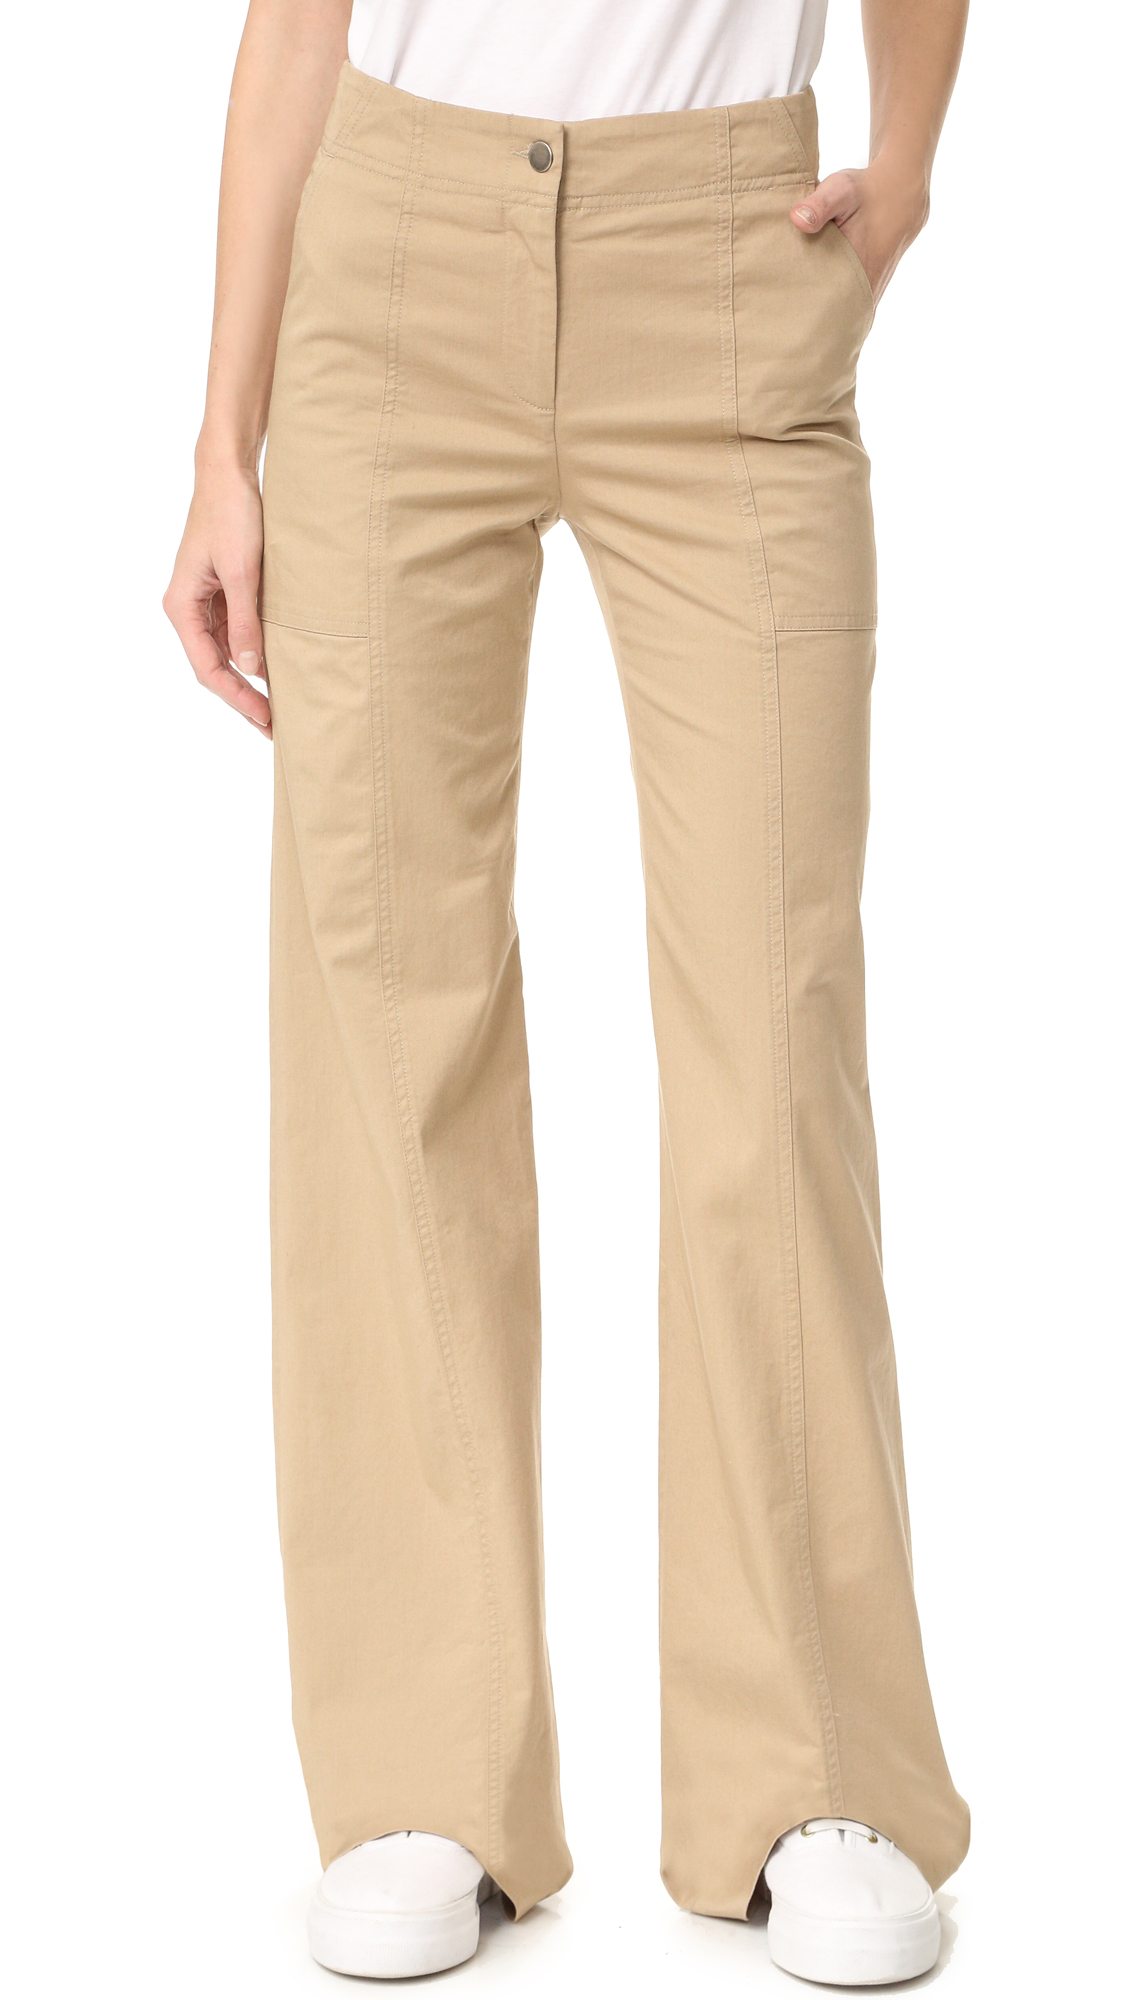 Crisp Veronica Beard pants with a high waisted, wide leg profile. Slant front pockets and button flap back pockets. Button closure and zip fly. Fabric: Stretch twill. 97% cotton/3% elastane. Dry clean. Made in the USA. Measurements